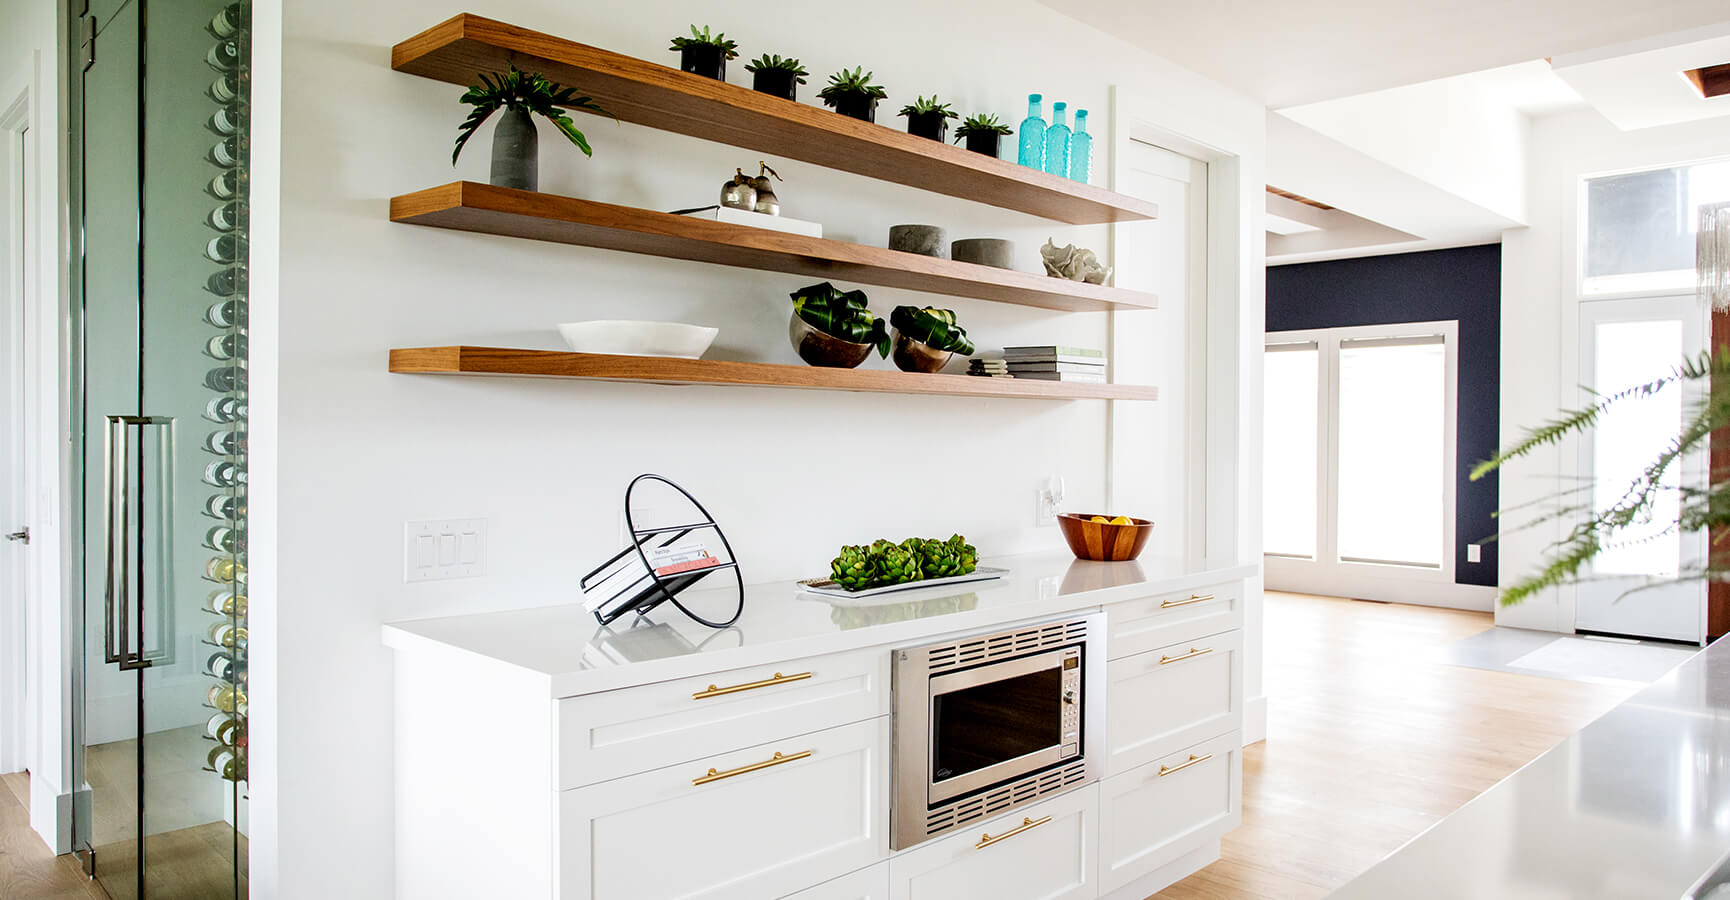 Contemporary Kitchen Design and Shelves